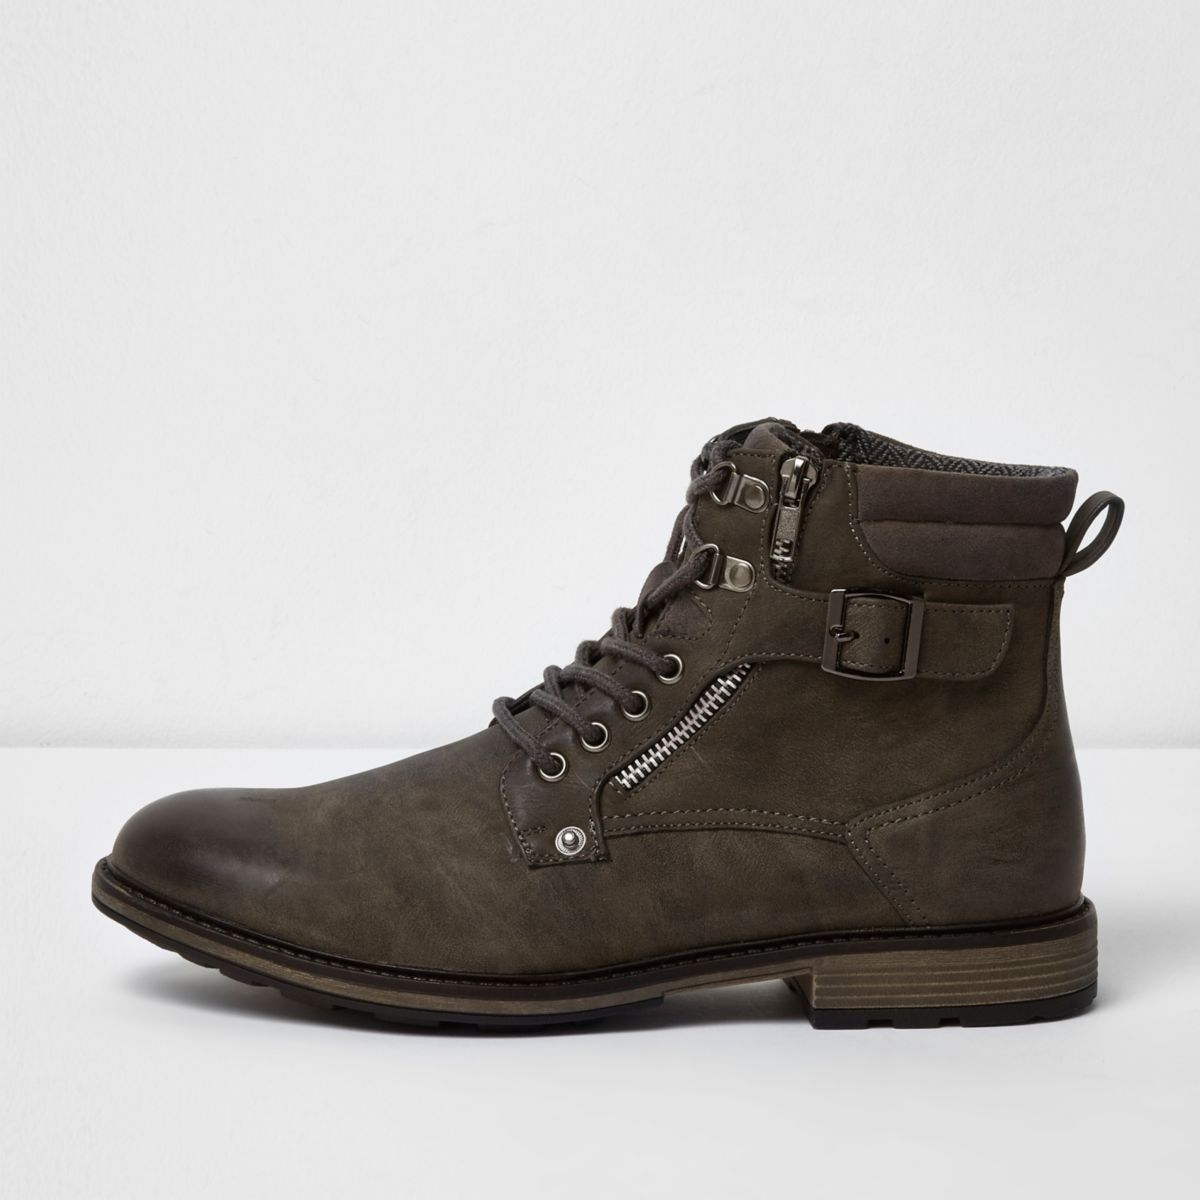 Grey military boots